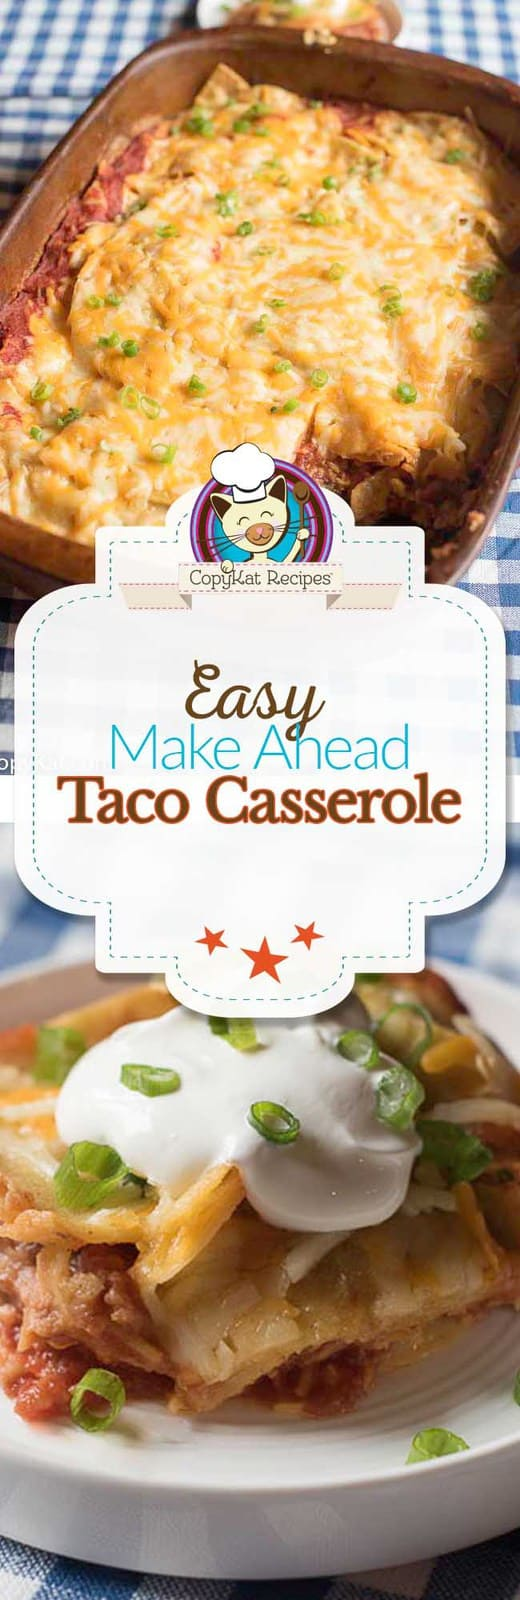 This make ahead Taco Casserole is the perfect recipe for a week night.  Simple to prepare, and so delicious.